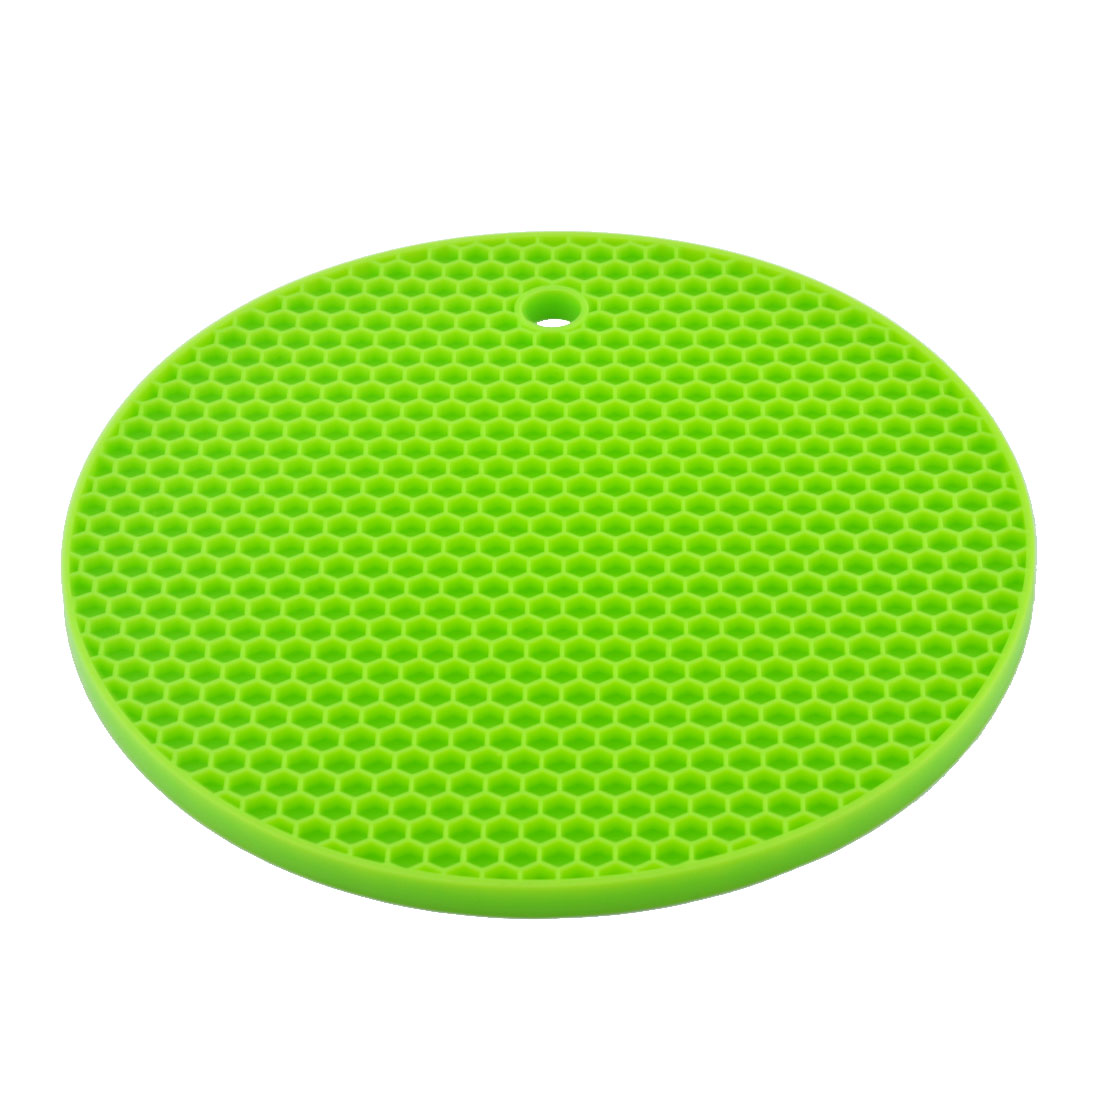 Silicone Honeycomb Design Table Heat Resistant Mat Cup Coaster Cushion Placemat Pad Green